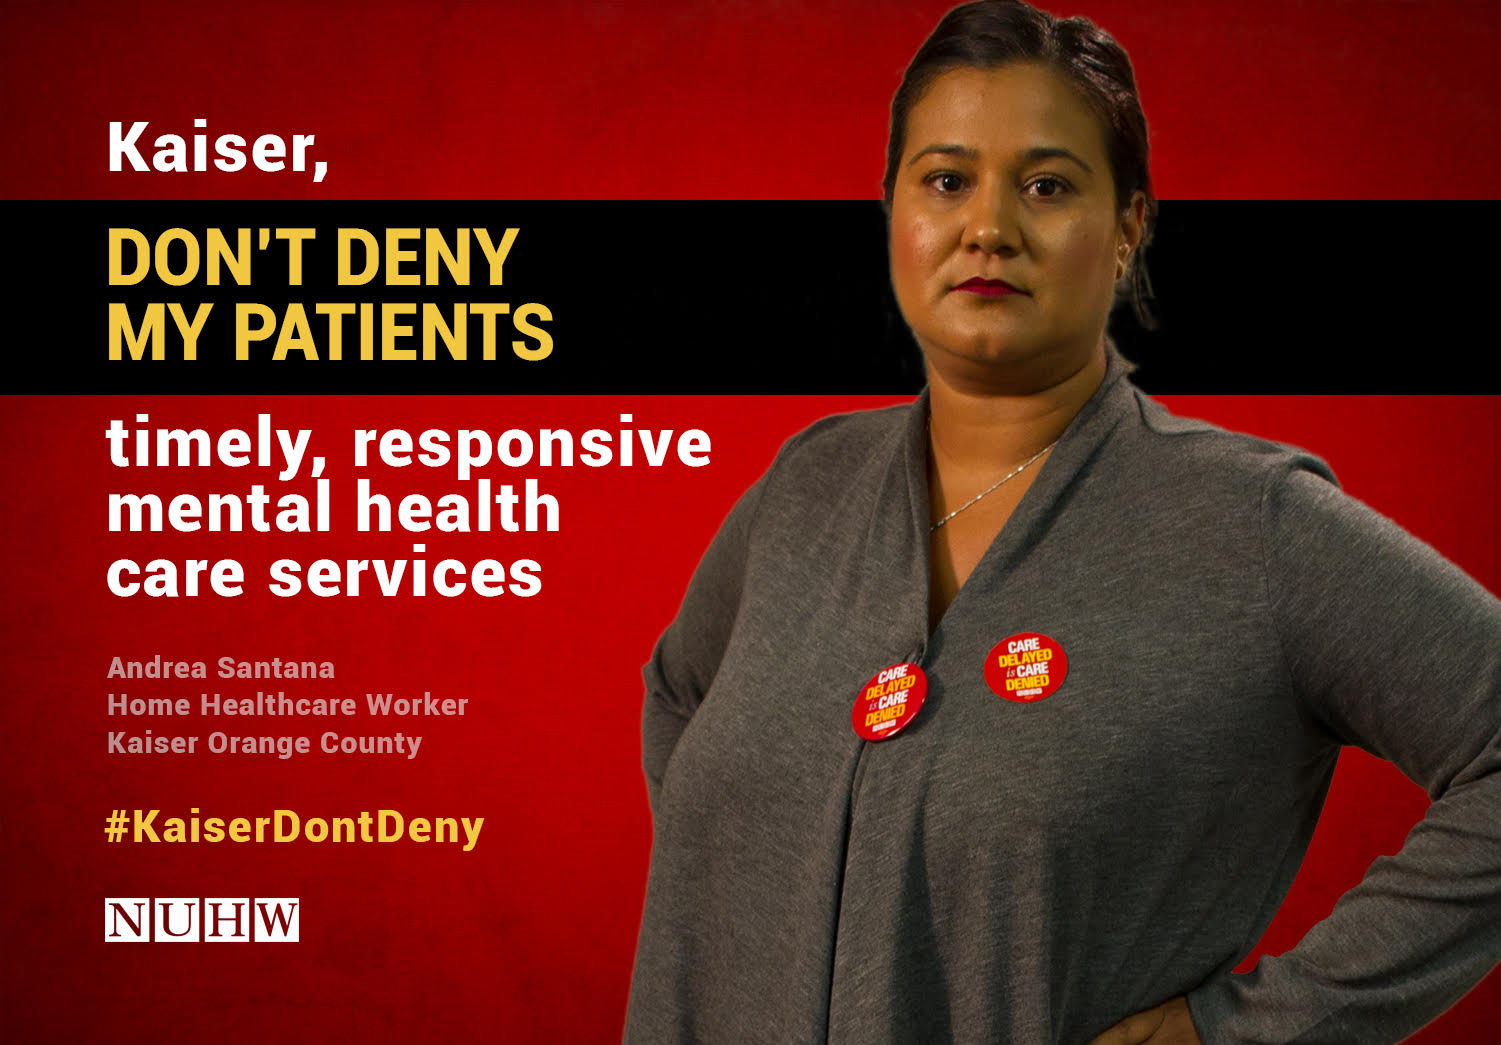 Kaiser, don't deny my patients timely, responsive mental health care services. -- Andrea Santana, Medical Social Worker, Kaiser Orange County